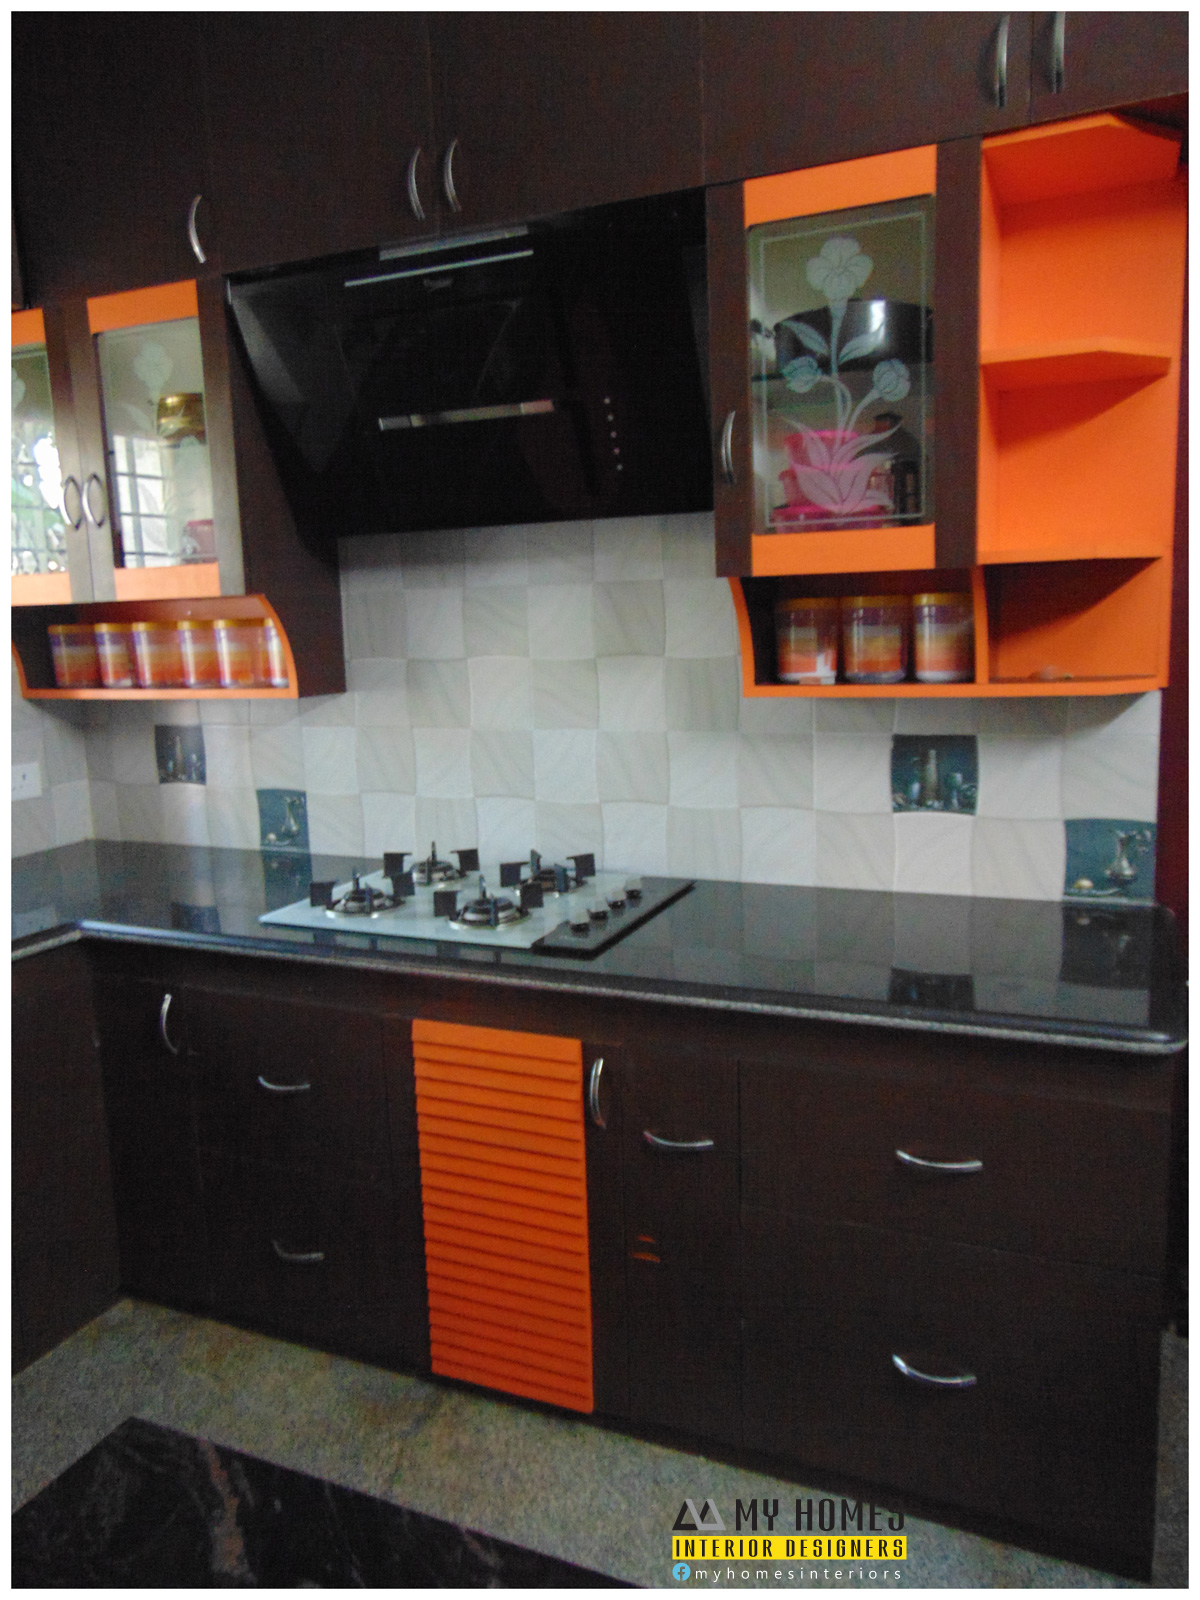 Kerala interior design ideas from designing company thrissur for Kitchen design kerala